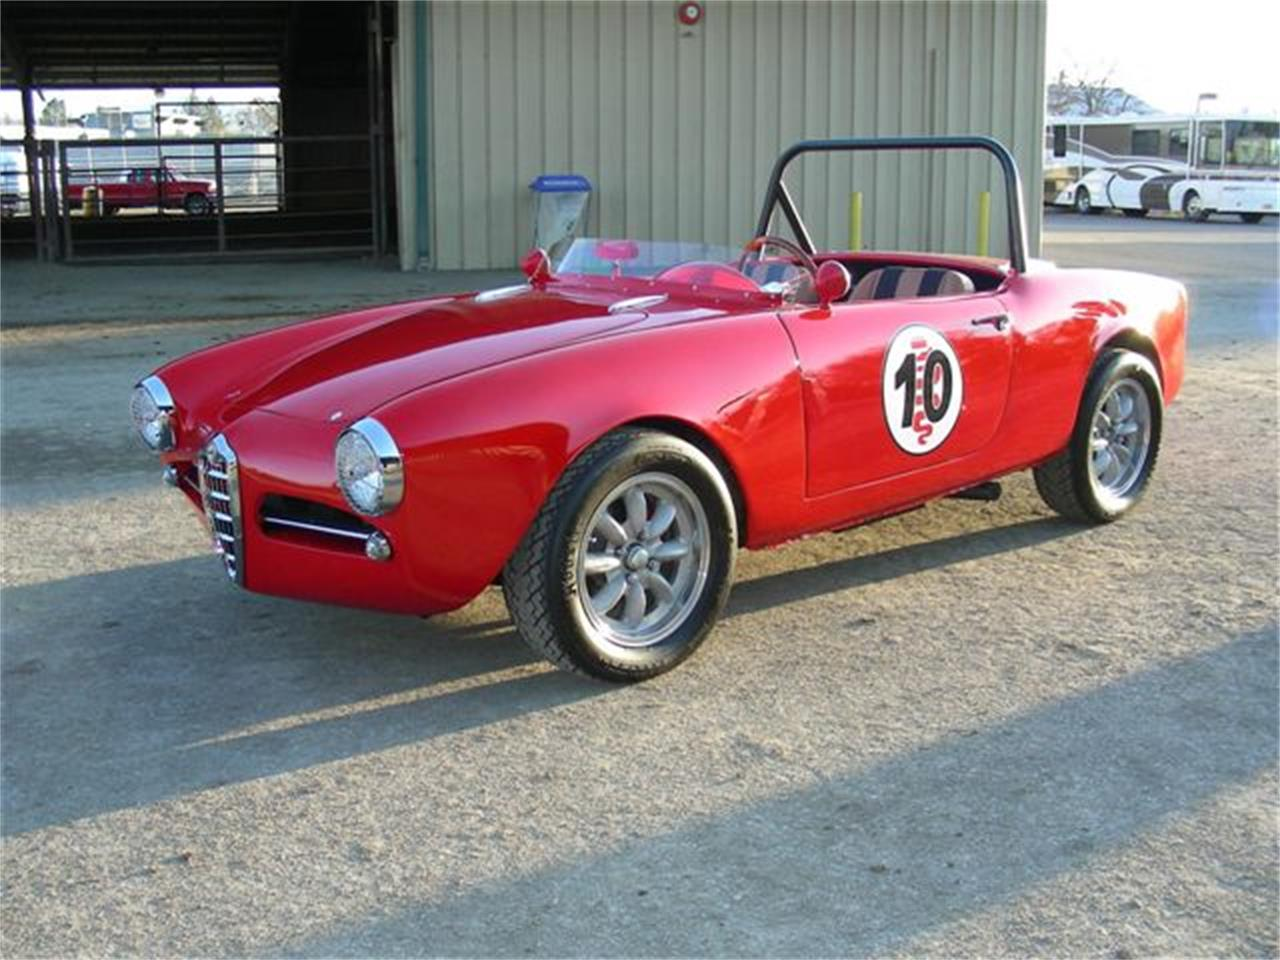 Large Picture of Classic 1962 Alfa Romeo Giulietta Spider - $31,995.00 Offered by a Private Seller - GPOR